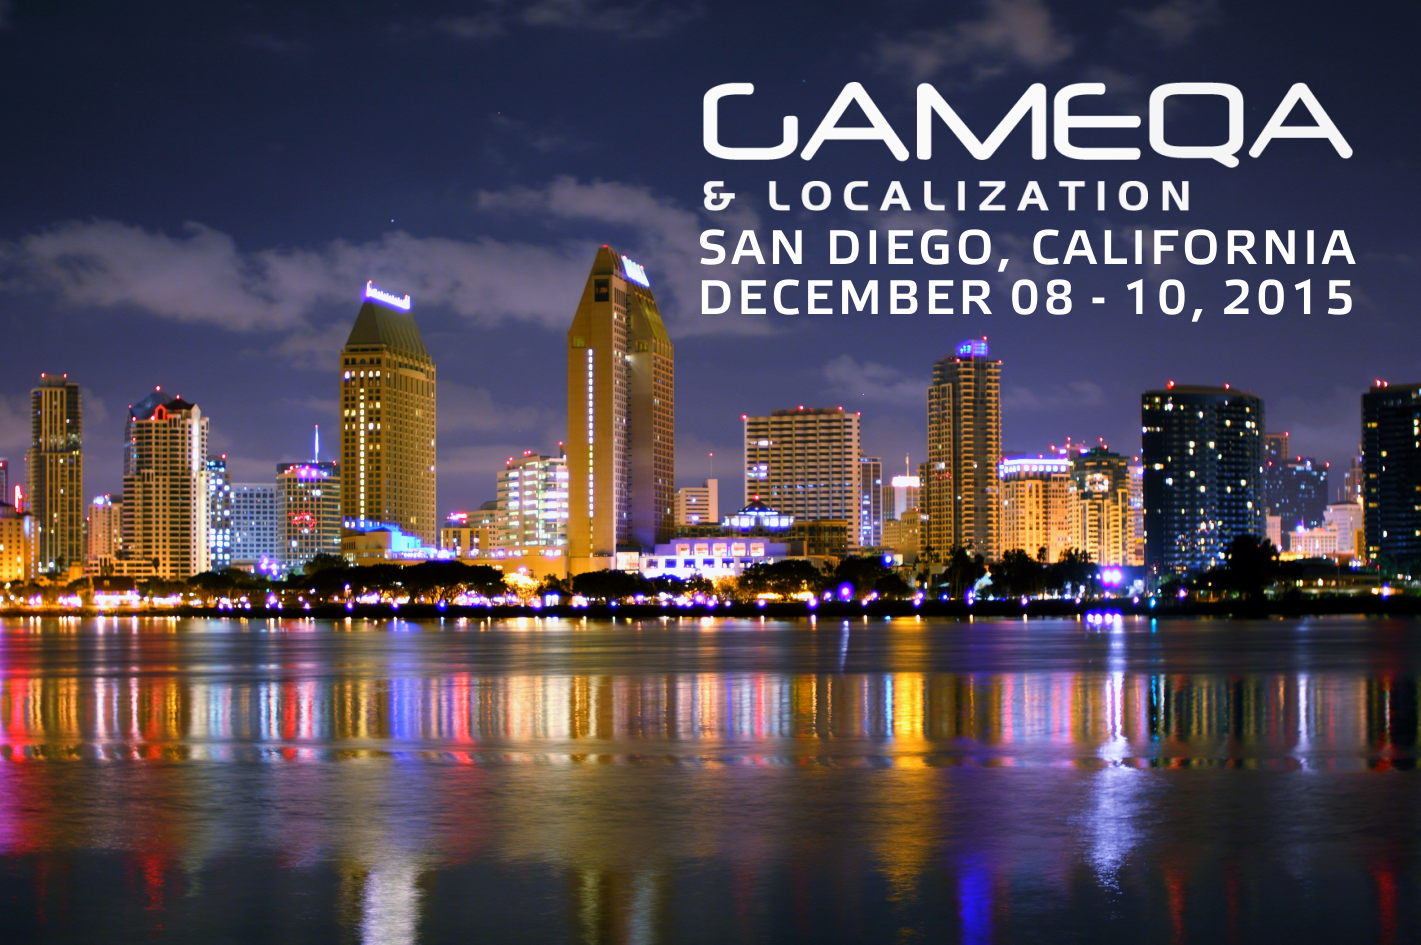 Attending the San Diego Game QA & Localization conference